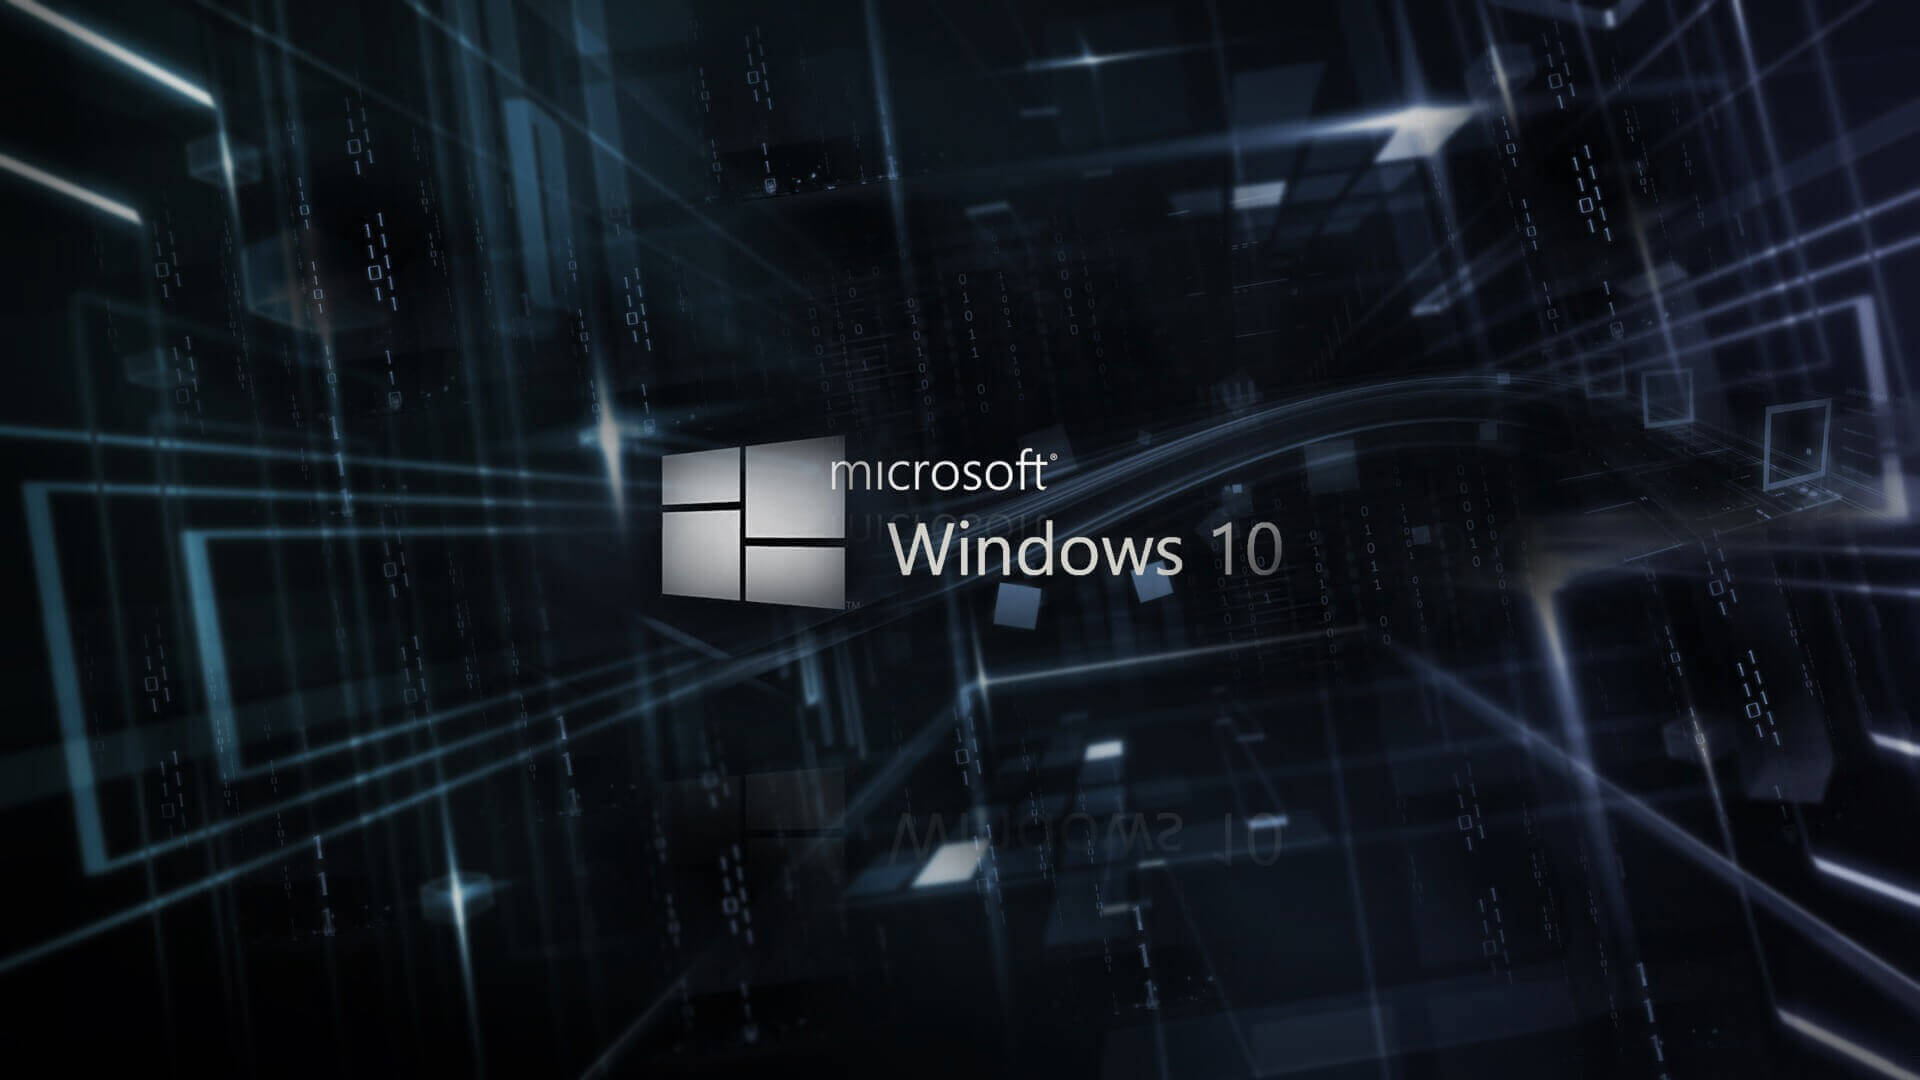 Windows 10 wallpapers 1920x1080px